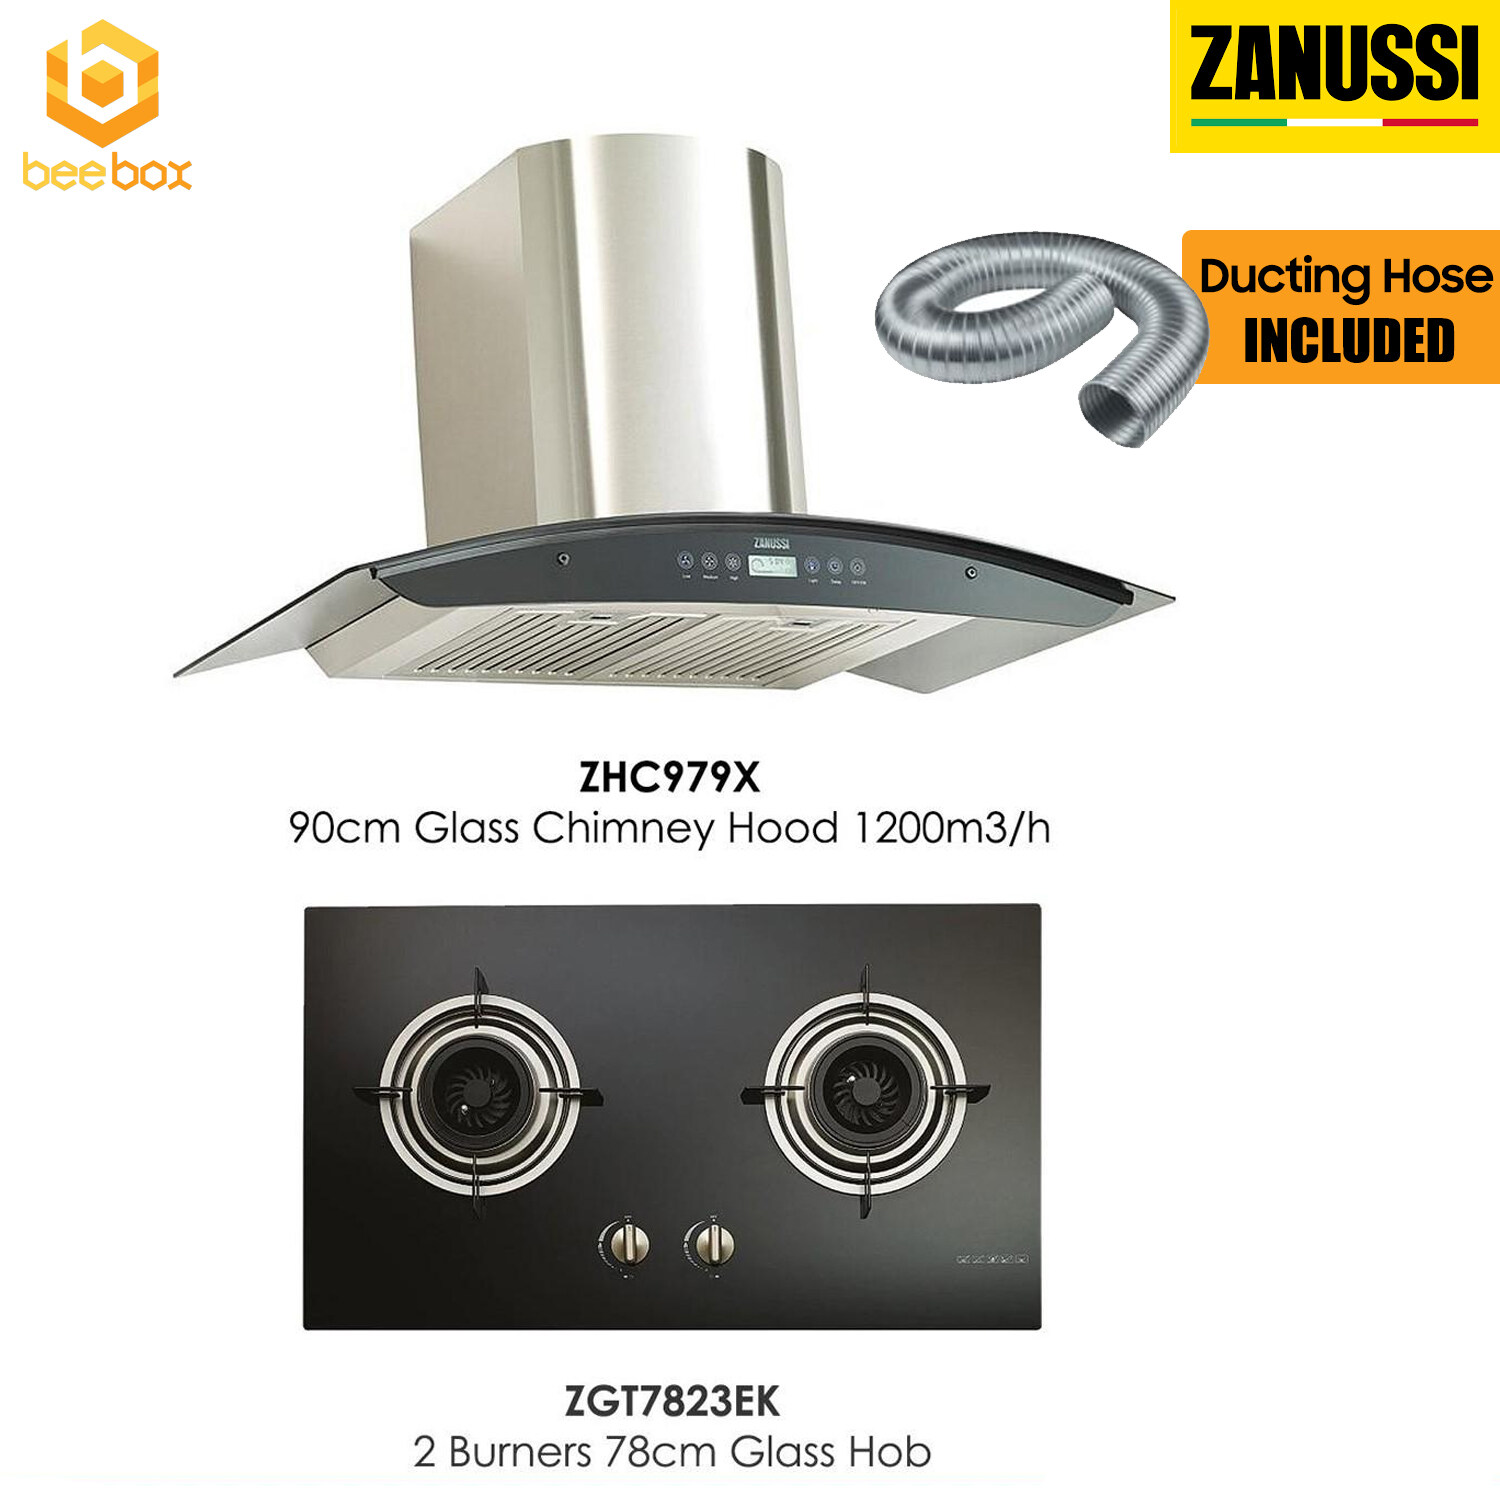 Zanussi 90cm Glass Chimney Hood ZHC979X + 78cm Built-In Hob 2 Burner ZGT7823EK (FREE DUCTING HOSE)